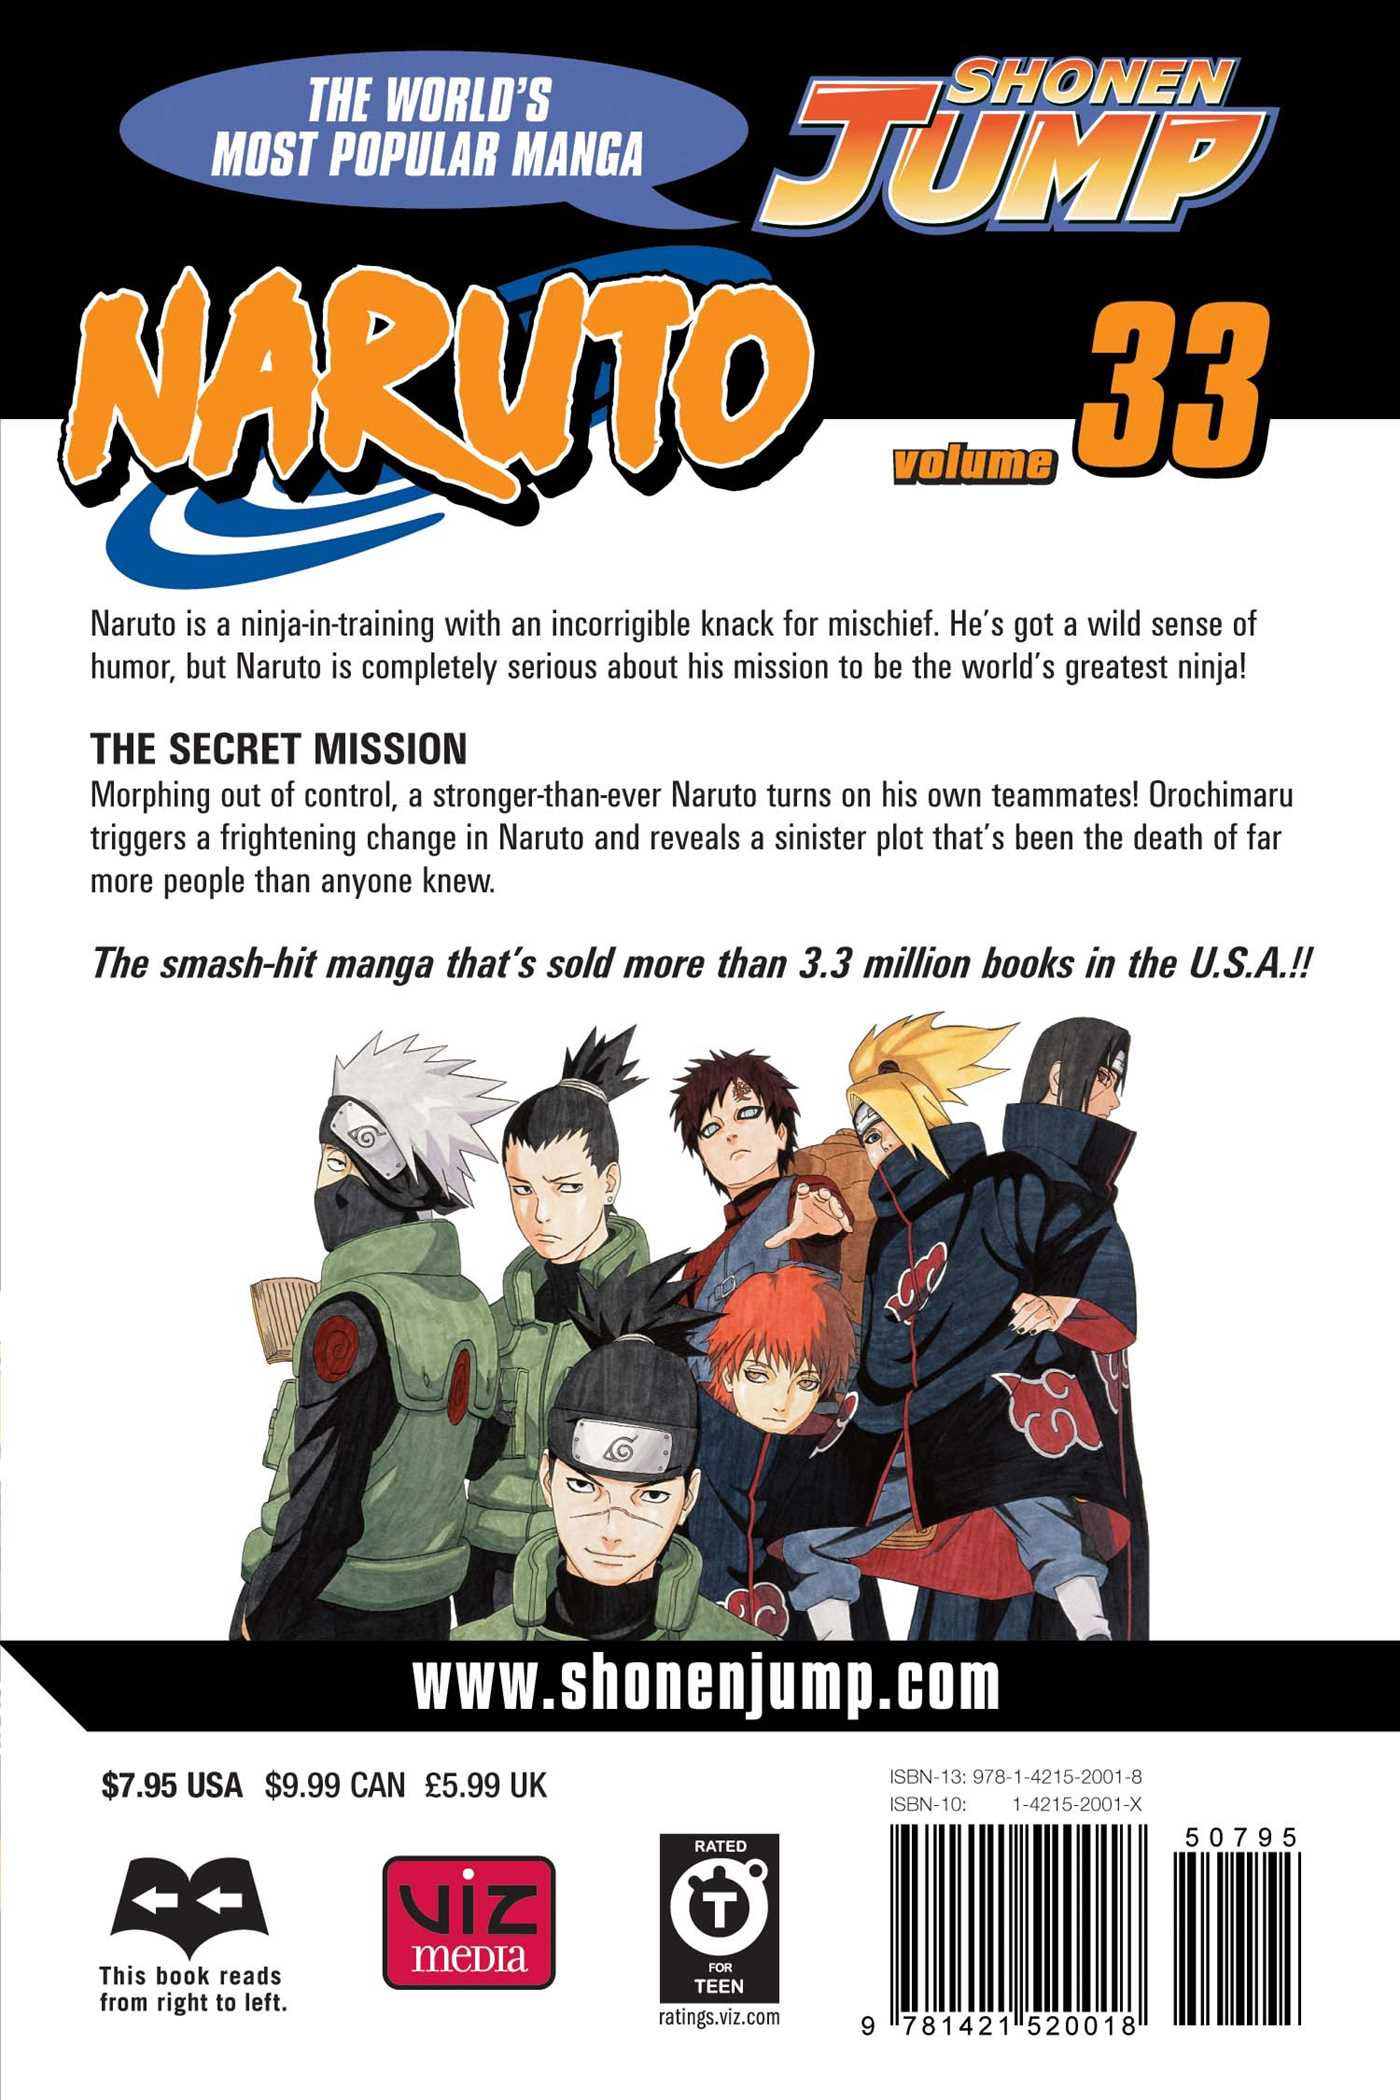 Naruto-vol-33-9781421520018_hr-back